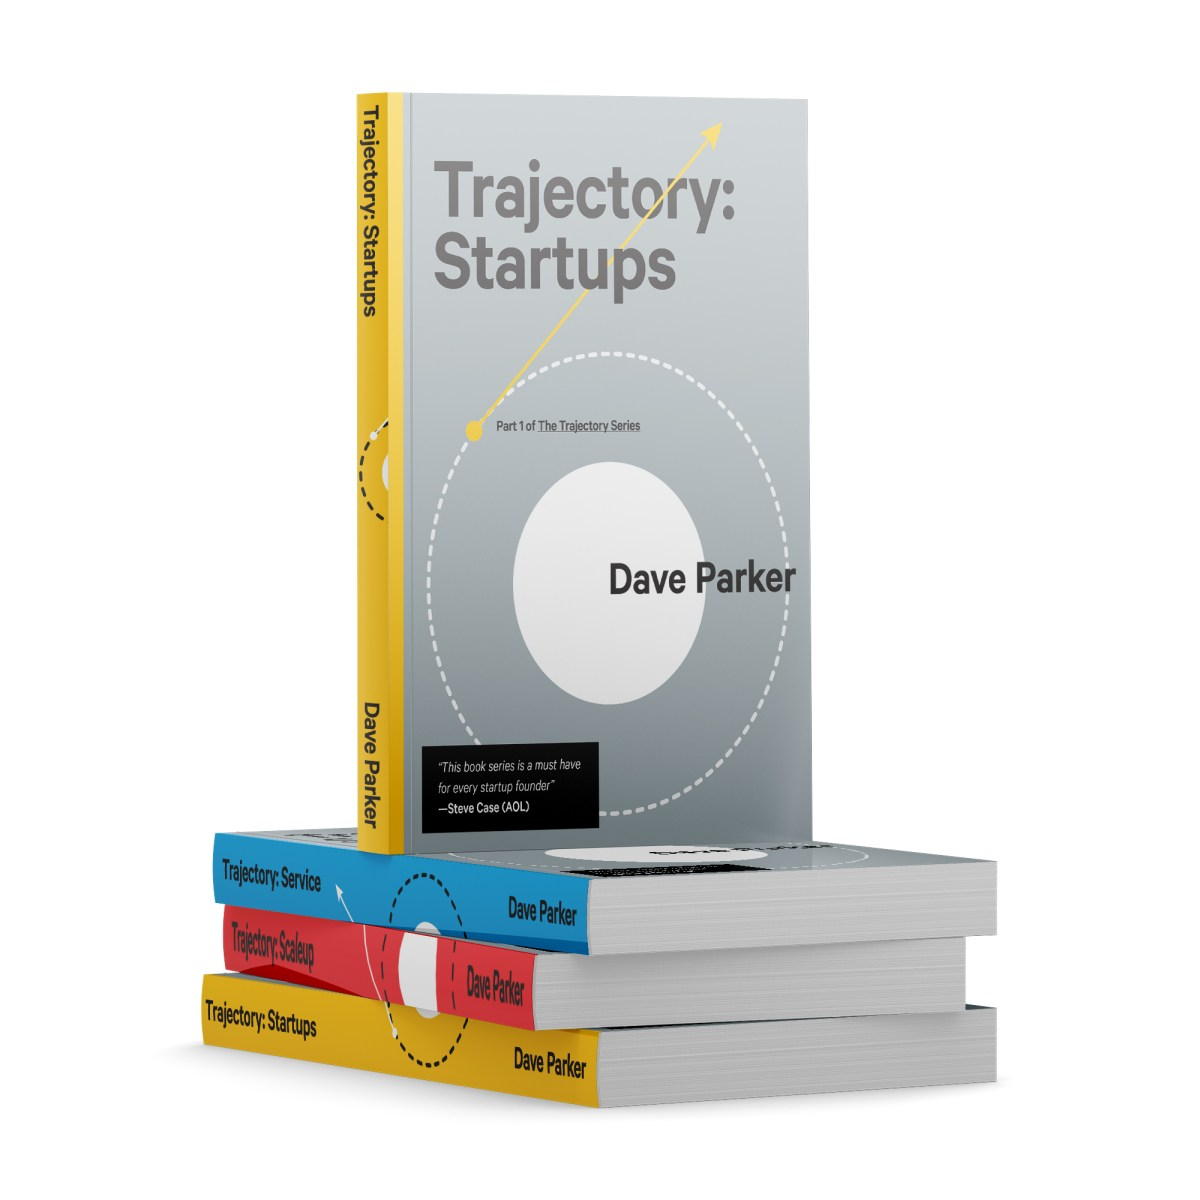 Trajectory Series book for Startup Companies